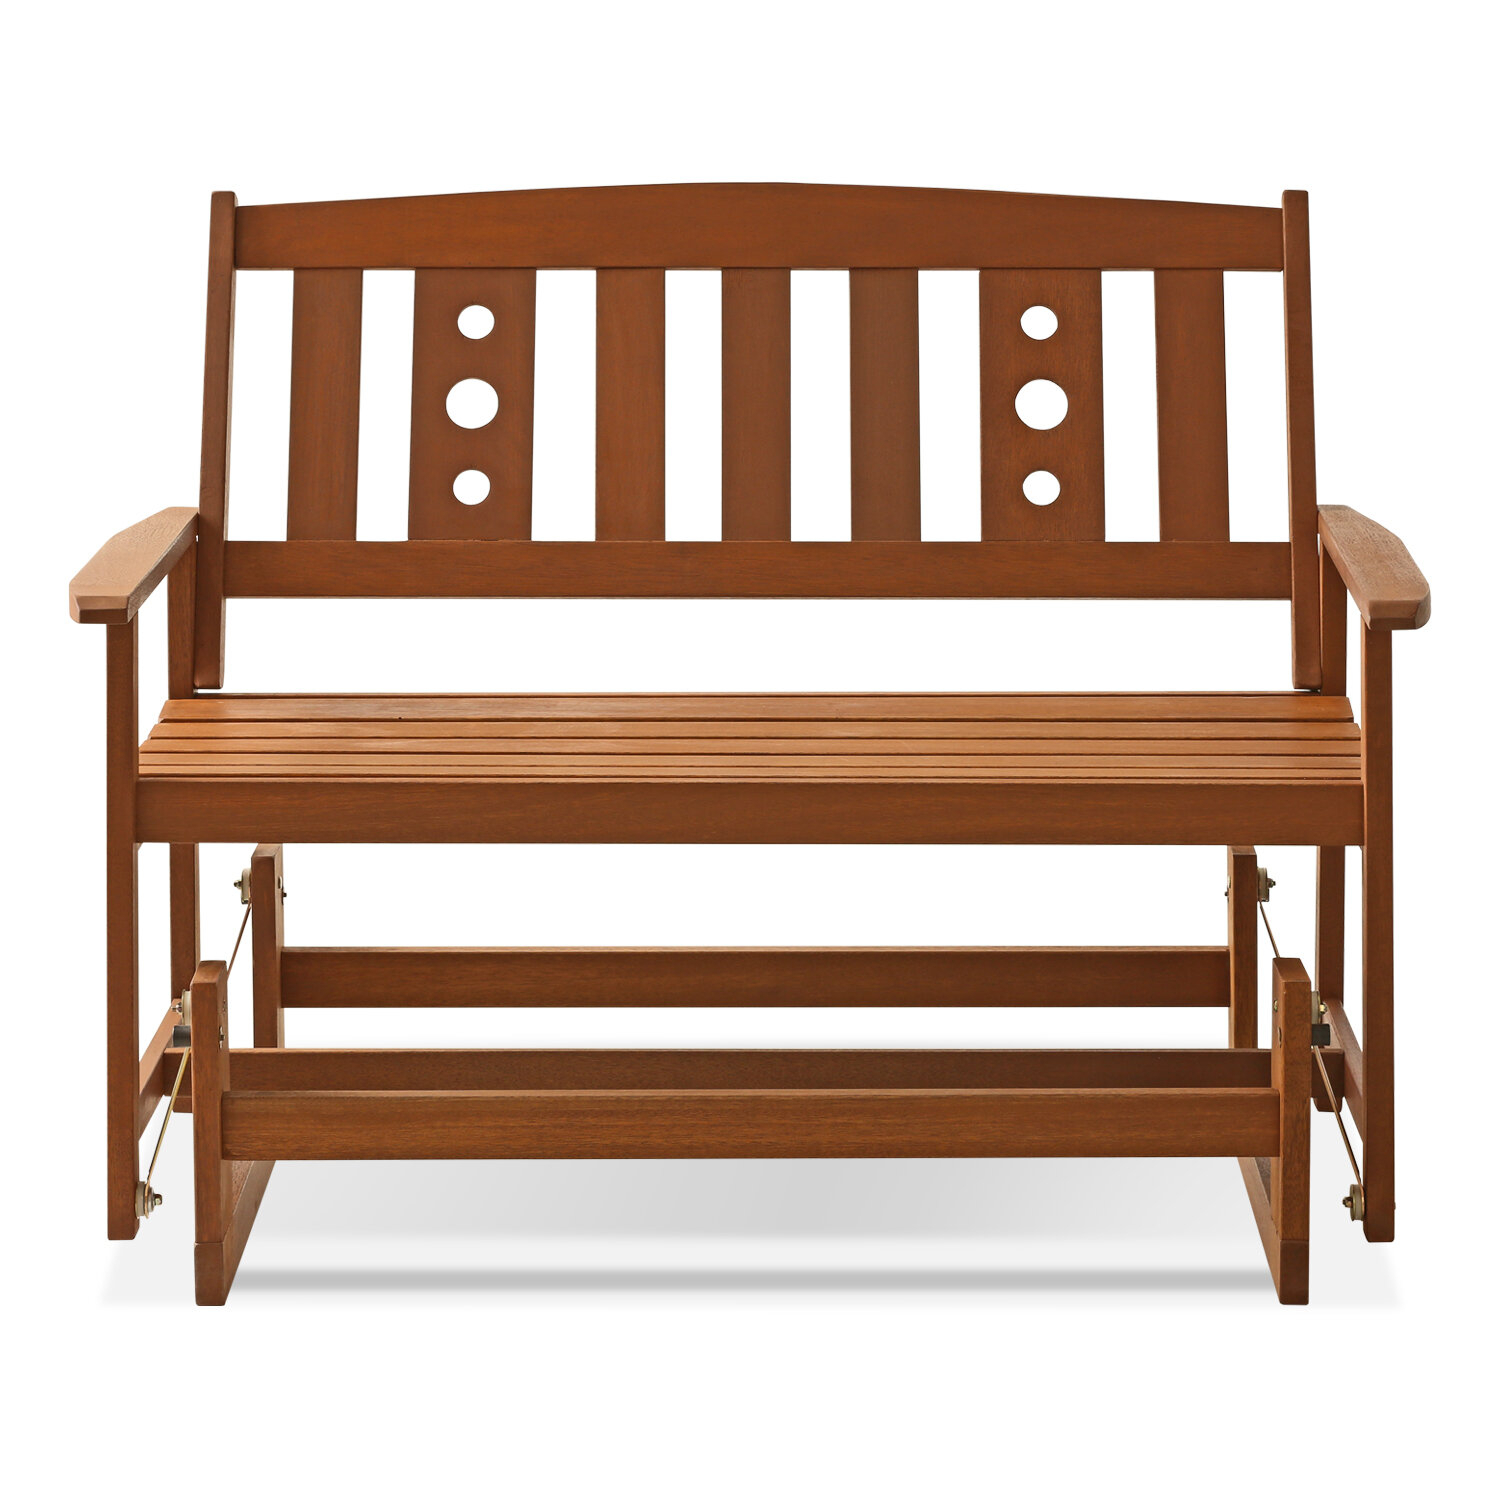 Langley Street Arianna Glider Bench & Reviews | Wayfair Inside Hardwood Porch Glider Benches (View 14 of 25)